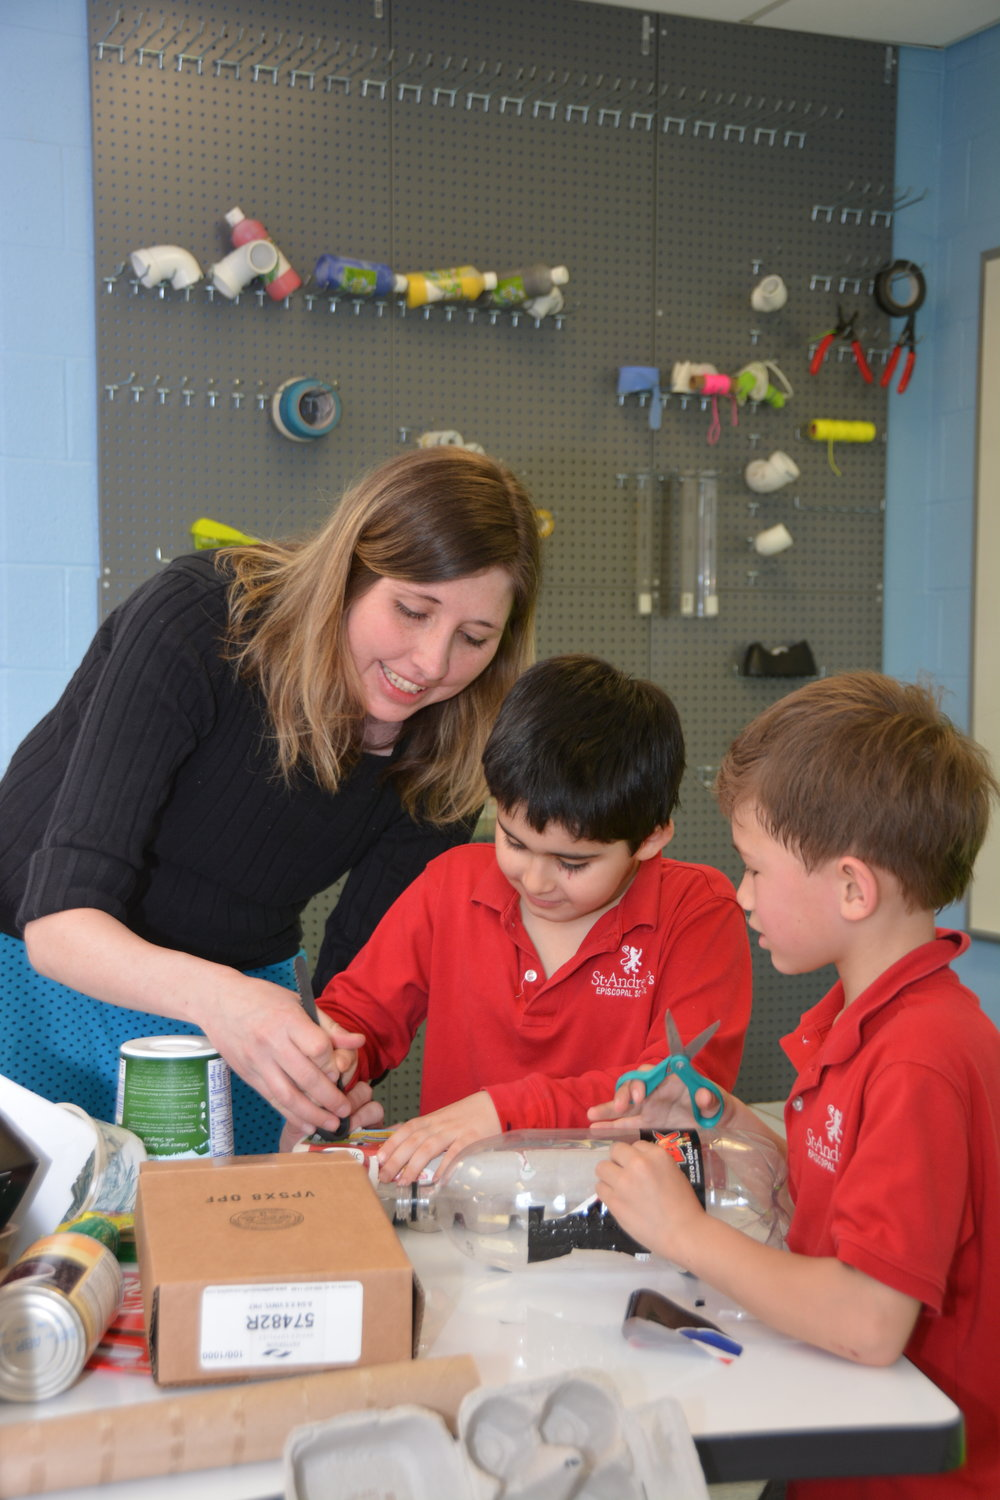 SAES Teacher and CTTL Lower School Research Coordinator to be Recognized at the White House